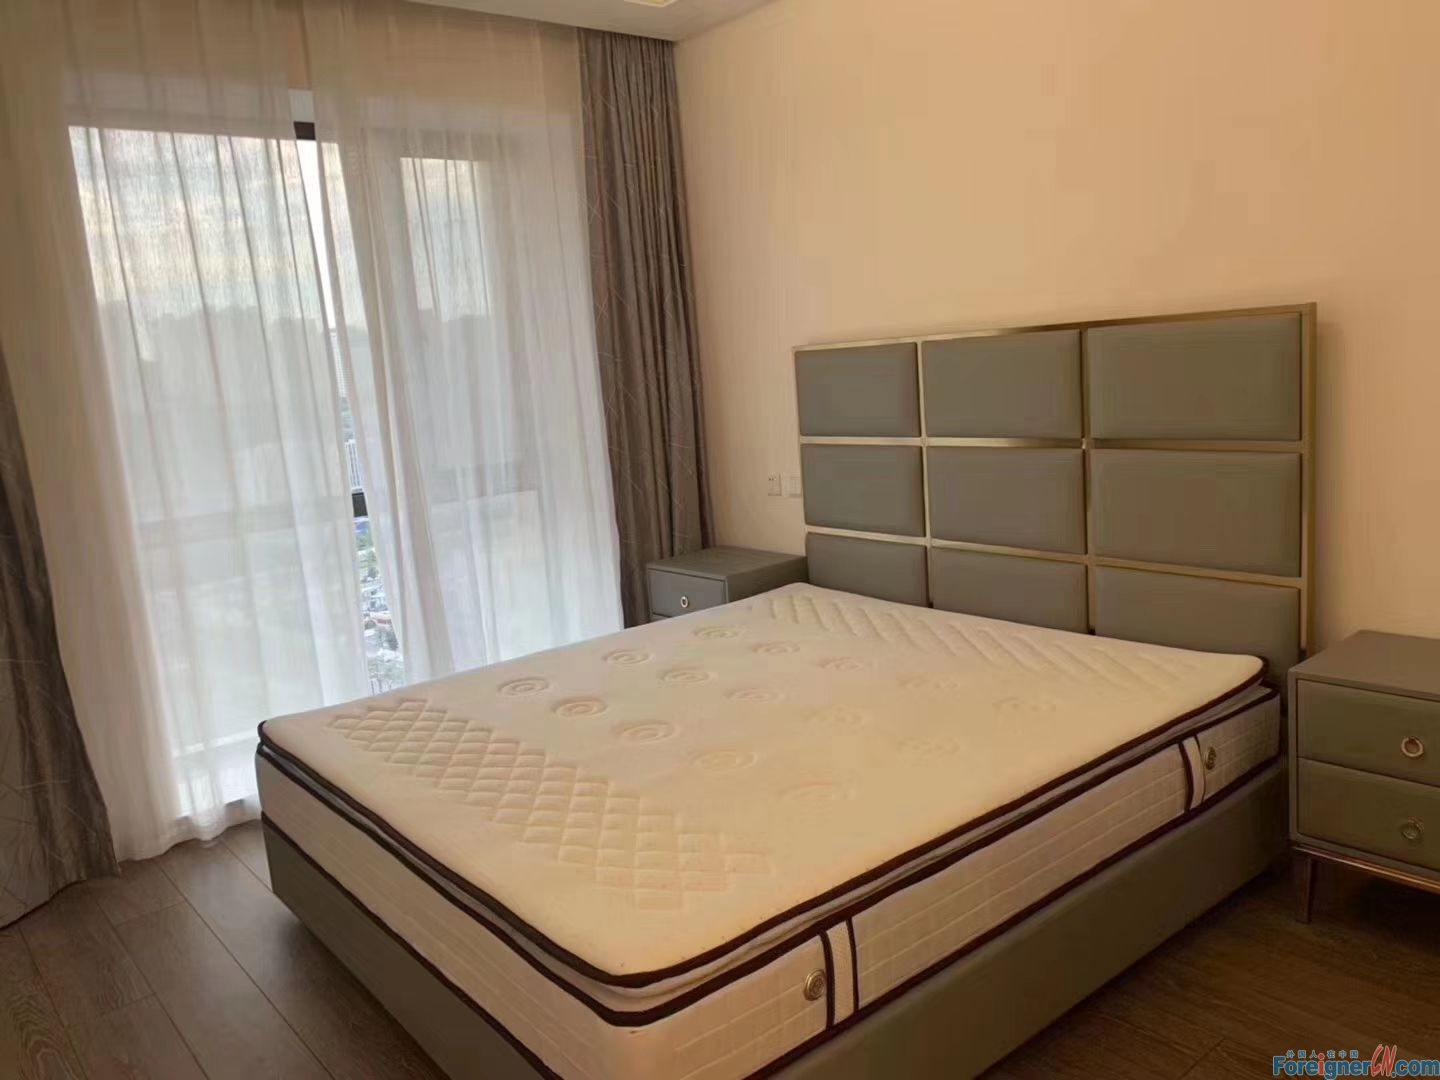 2 bed apartment for rent in Donggang,Zhongshan.